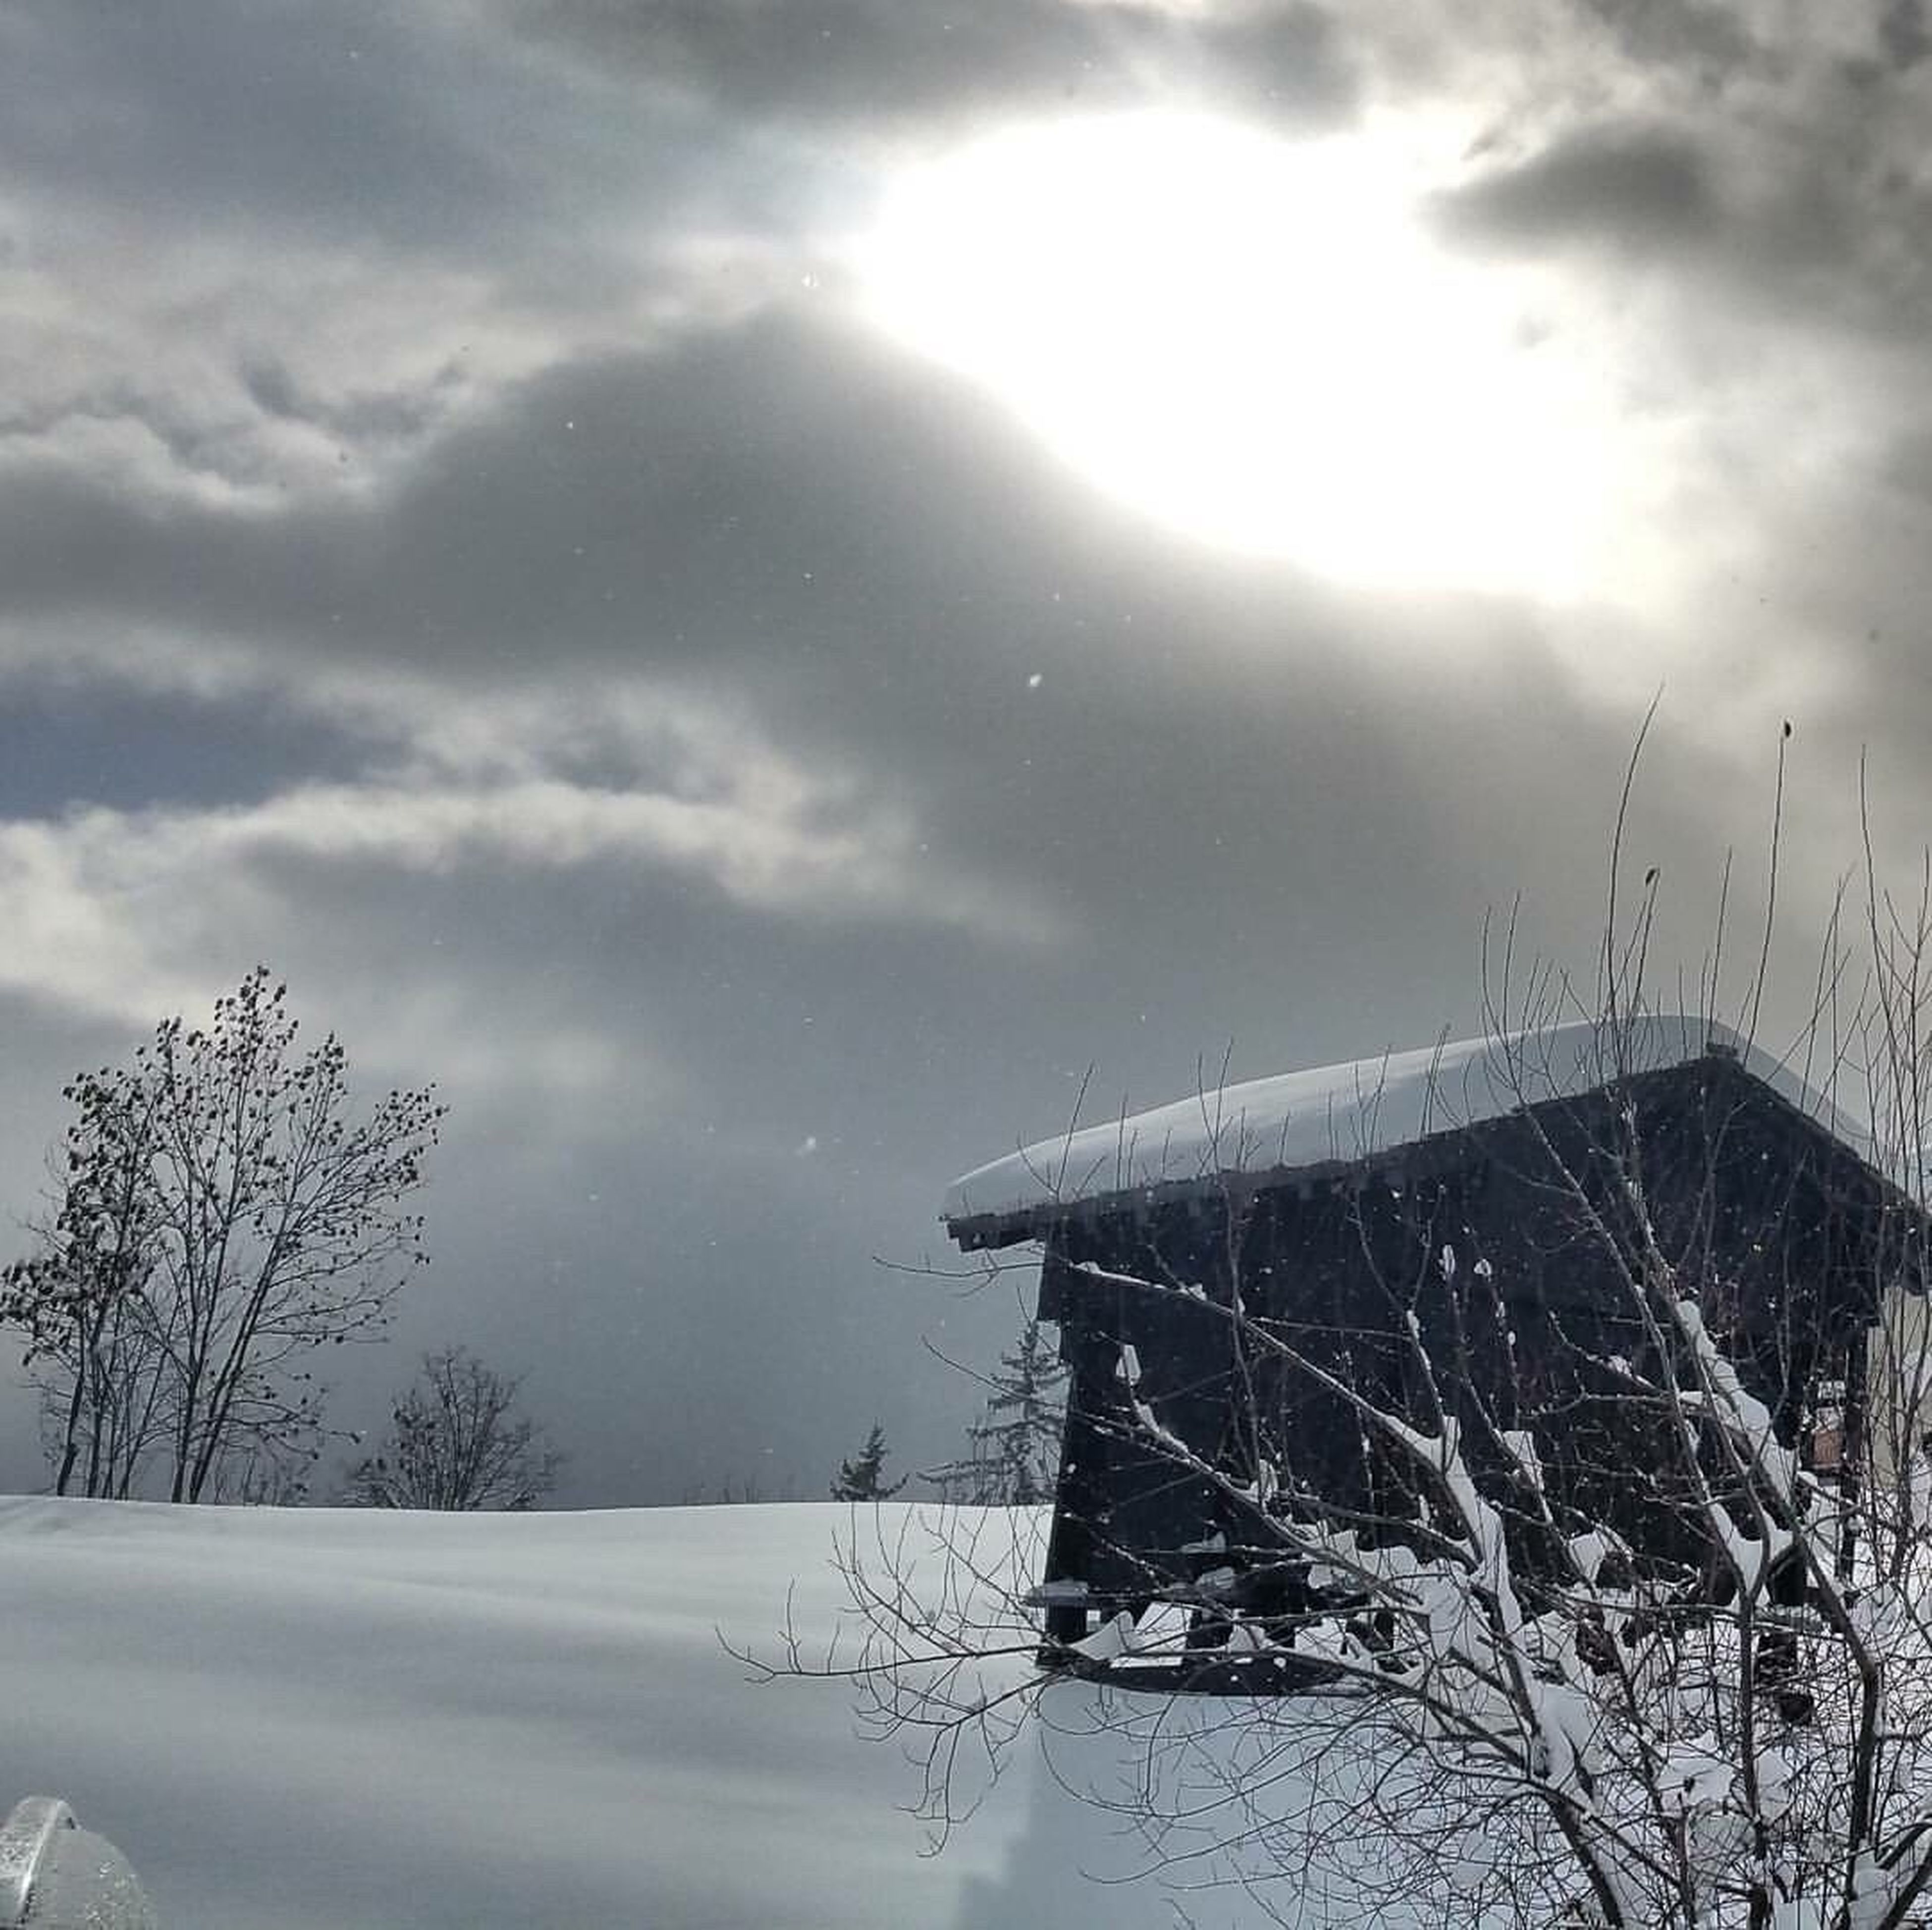 winter, snow, weather, cold temperature, sky, no people, cloud - sky, nature, bare tree, tree, landscape, day, outdoors, built structure, scenics, beauty in nature, architecture, tranquility, building exterior, windmill